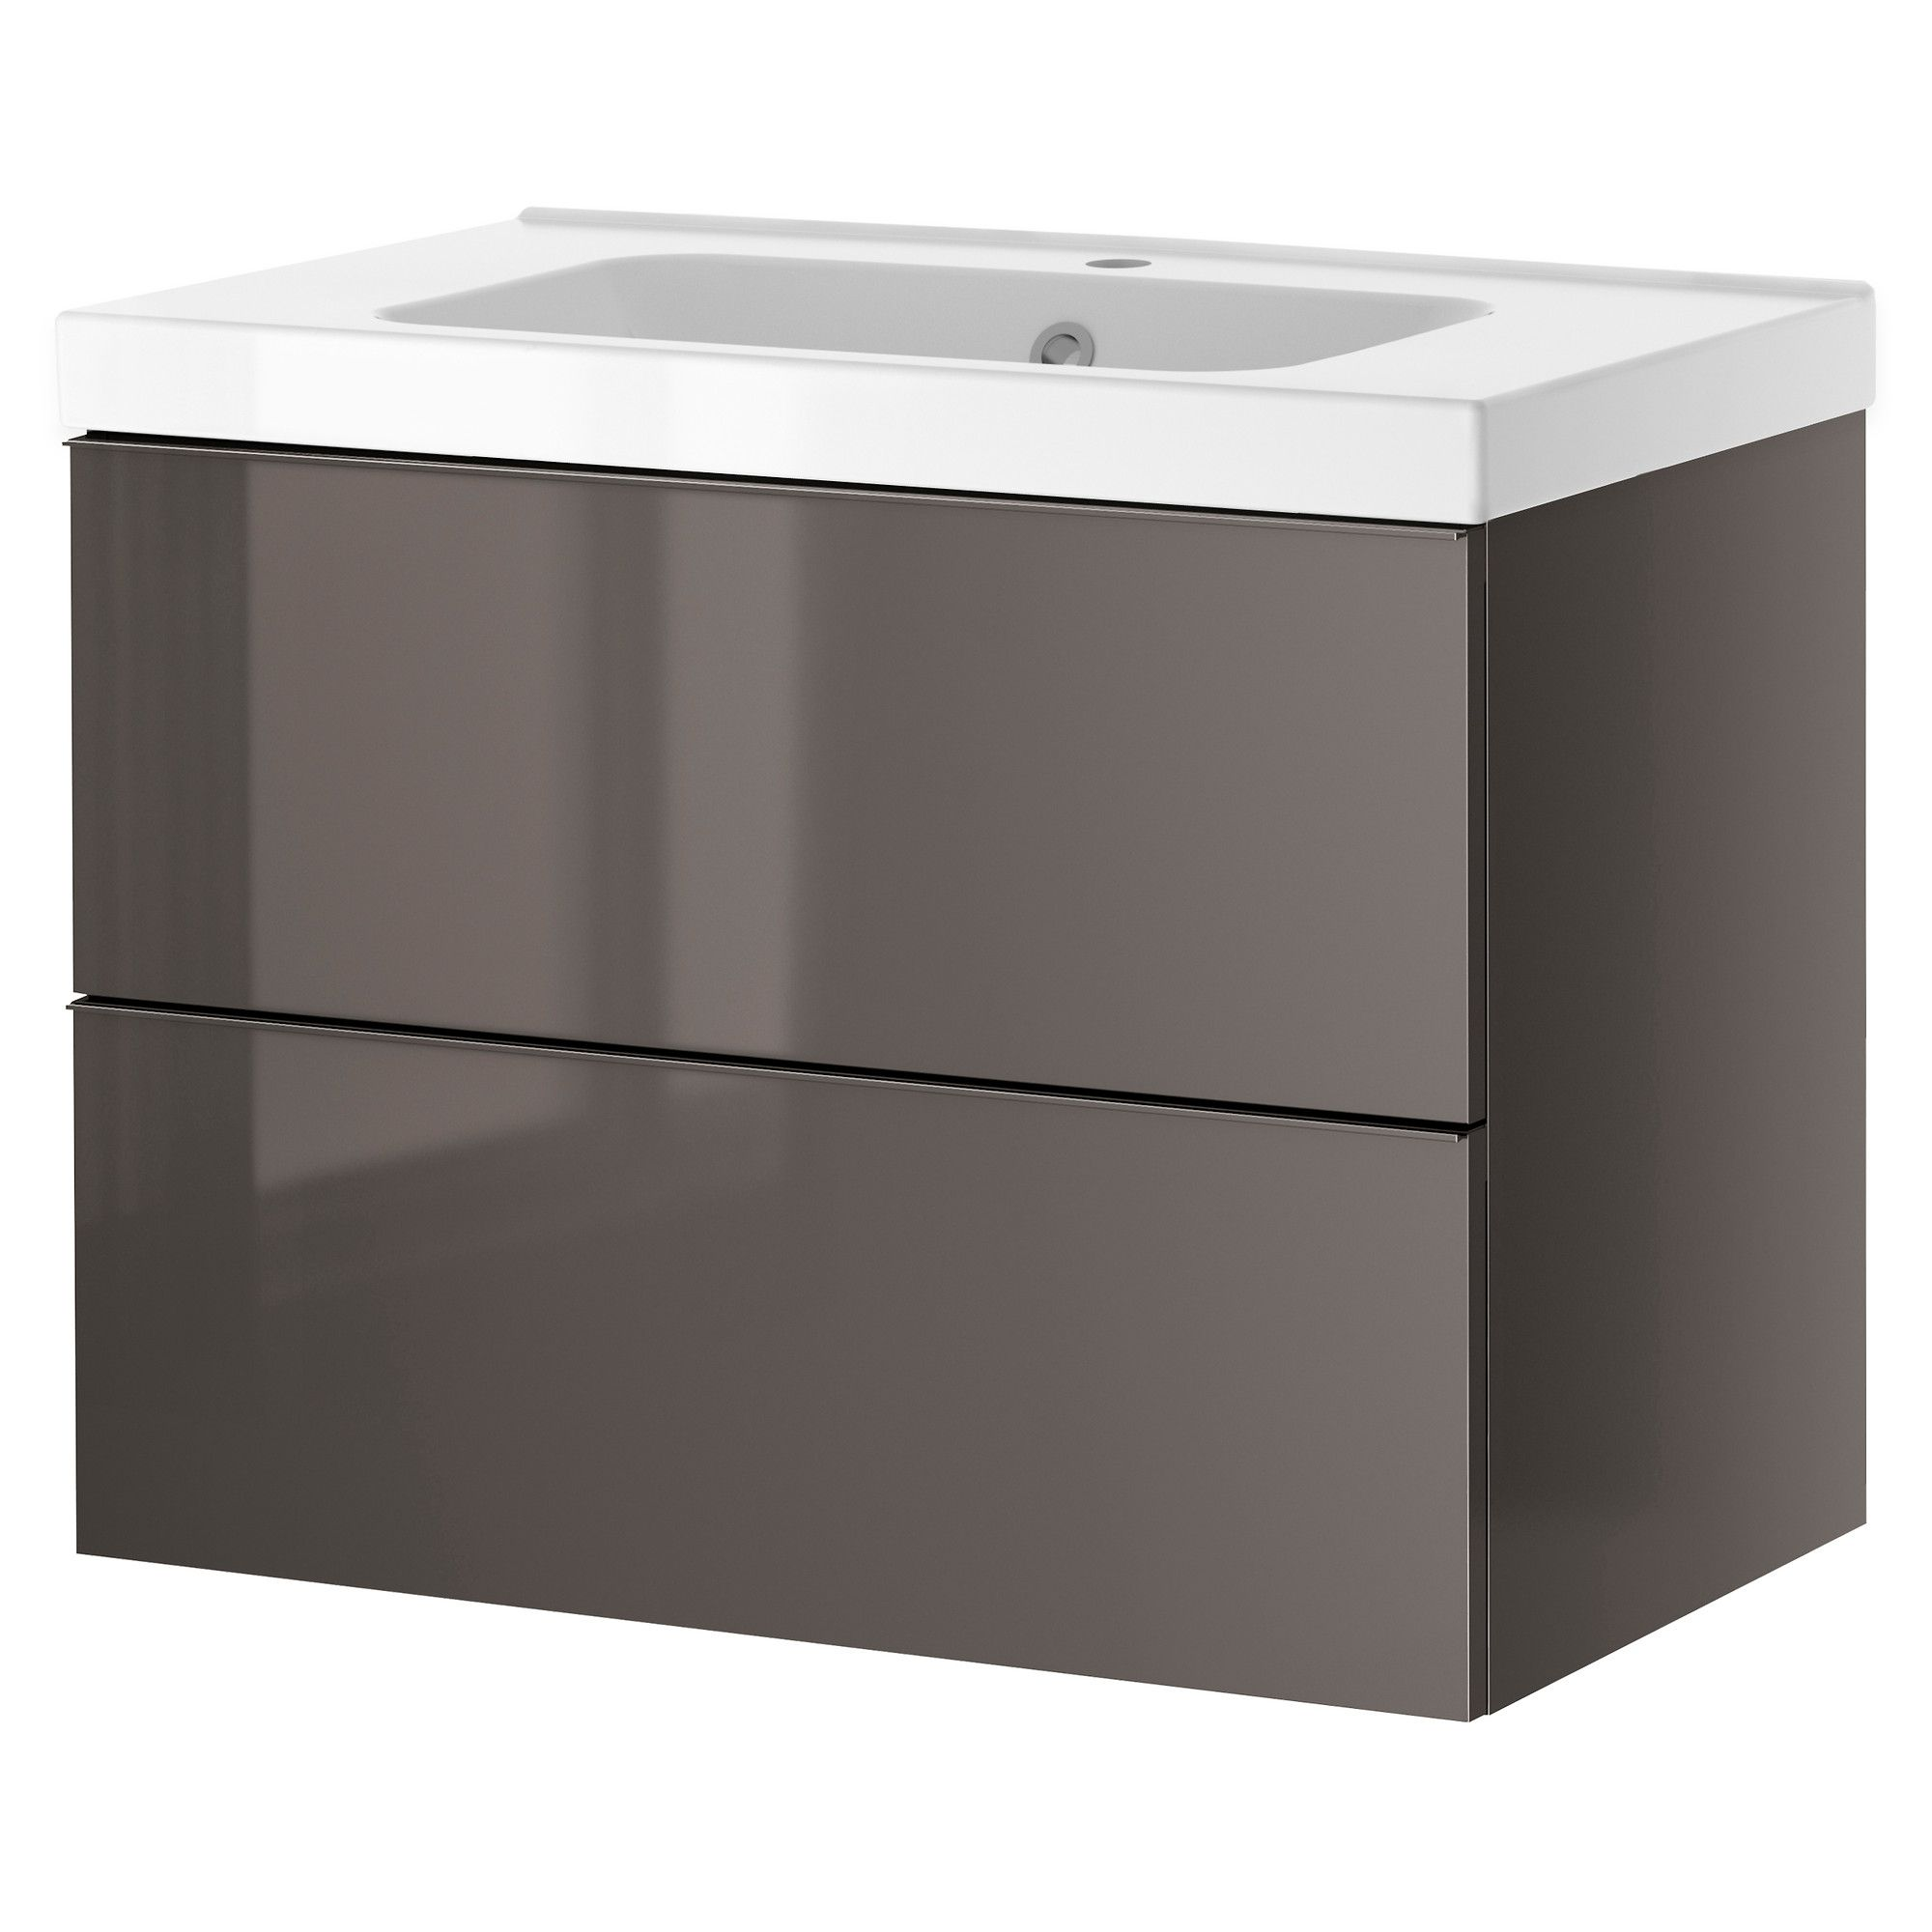 White Gloss Drawers Godmorgon Odensvik Sink Cabinet With 2 Drawers White